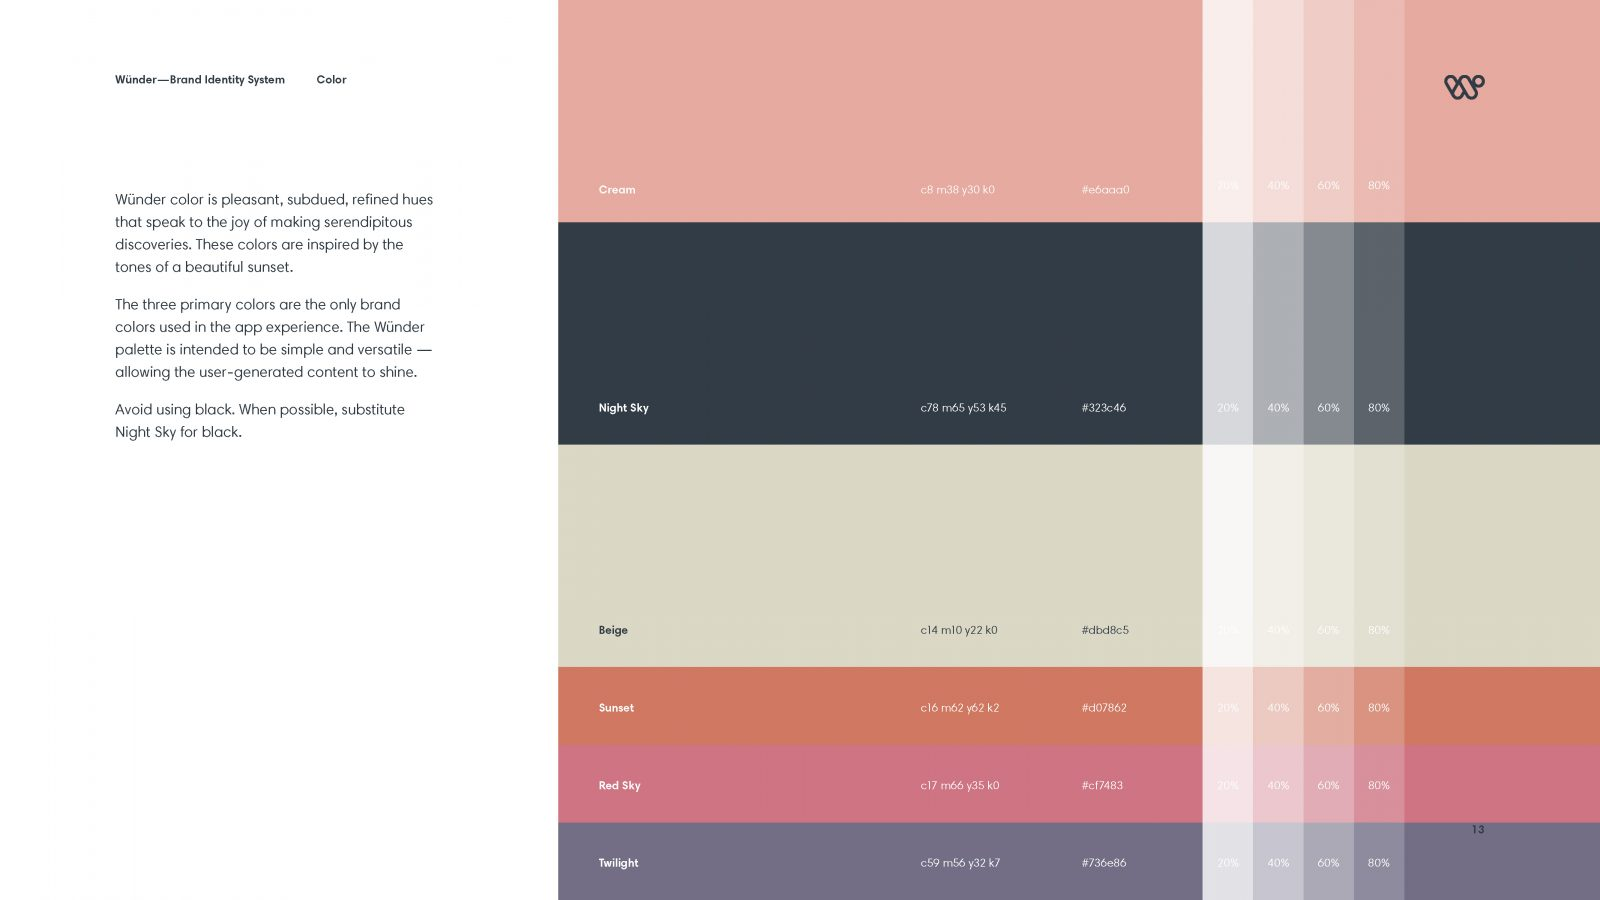 Wunder-Brand_Identity_Guidelines_Page_13